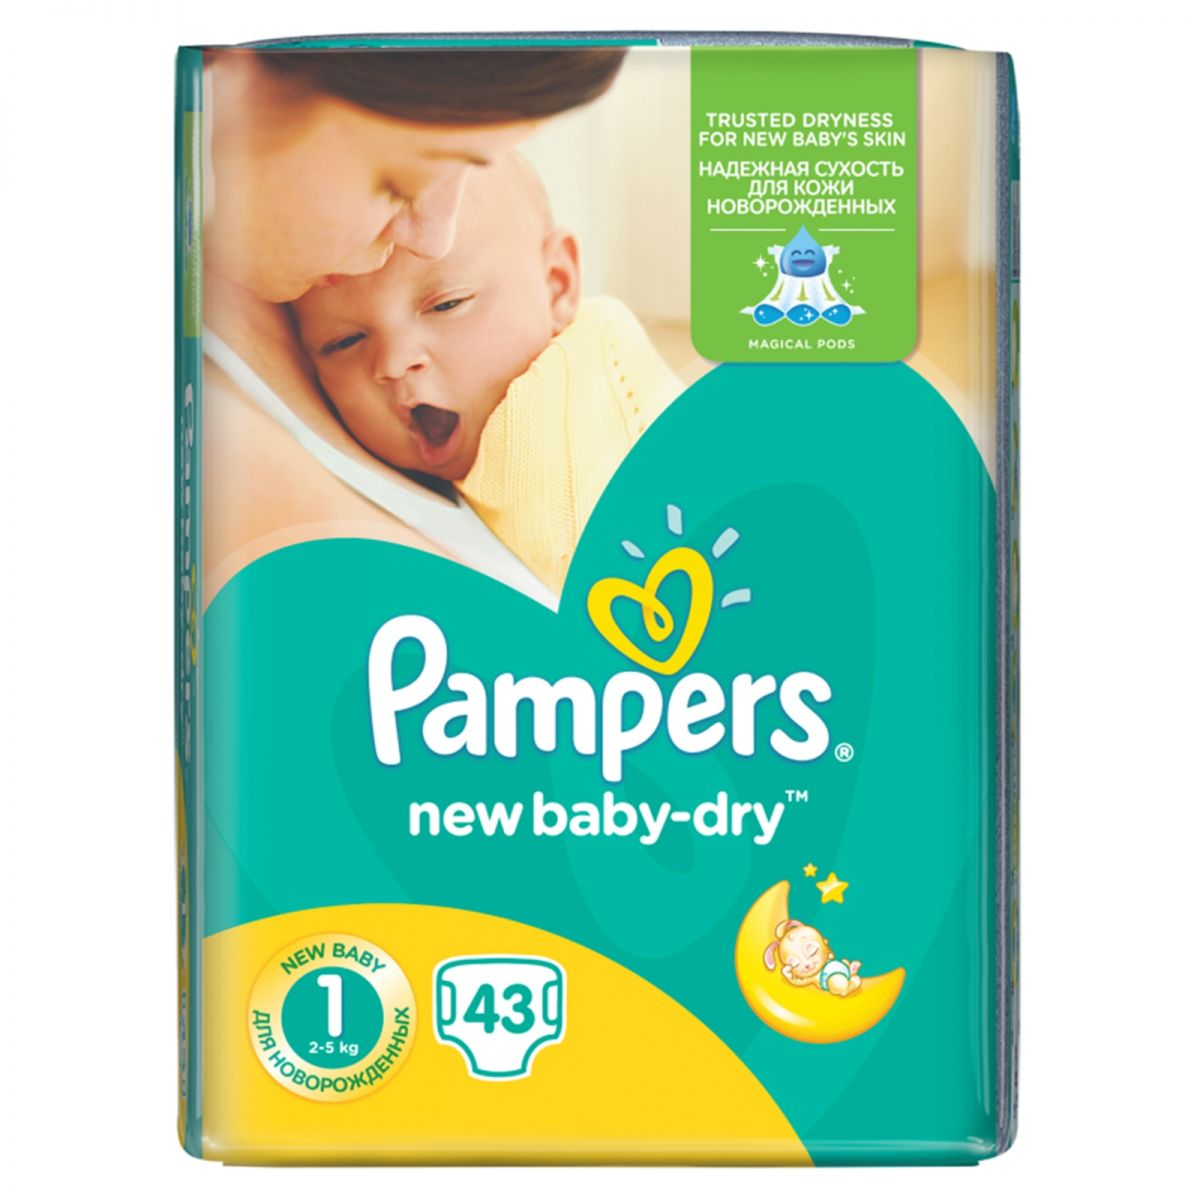 Couches pampers newborn 43 pcs 2 5 kg pampers orchestra articles pour b b et listes de - Couches pampers naissance ...